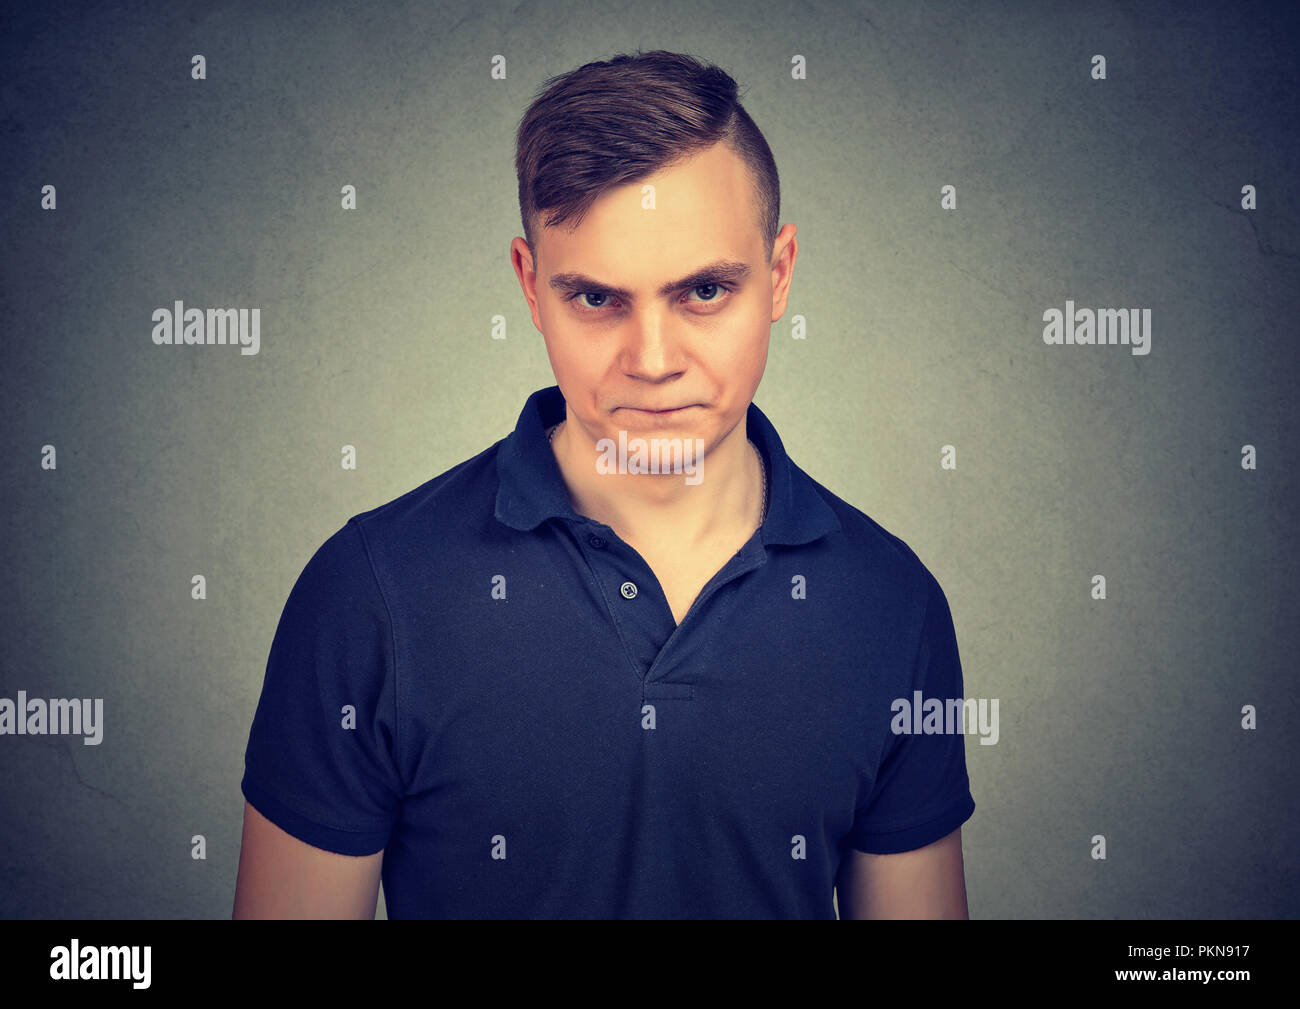 Young hateful man frowning and looking at camera in distaste on gray background - Stock Image